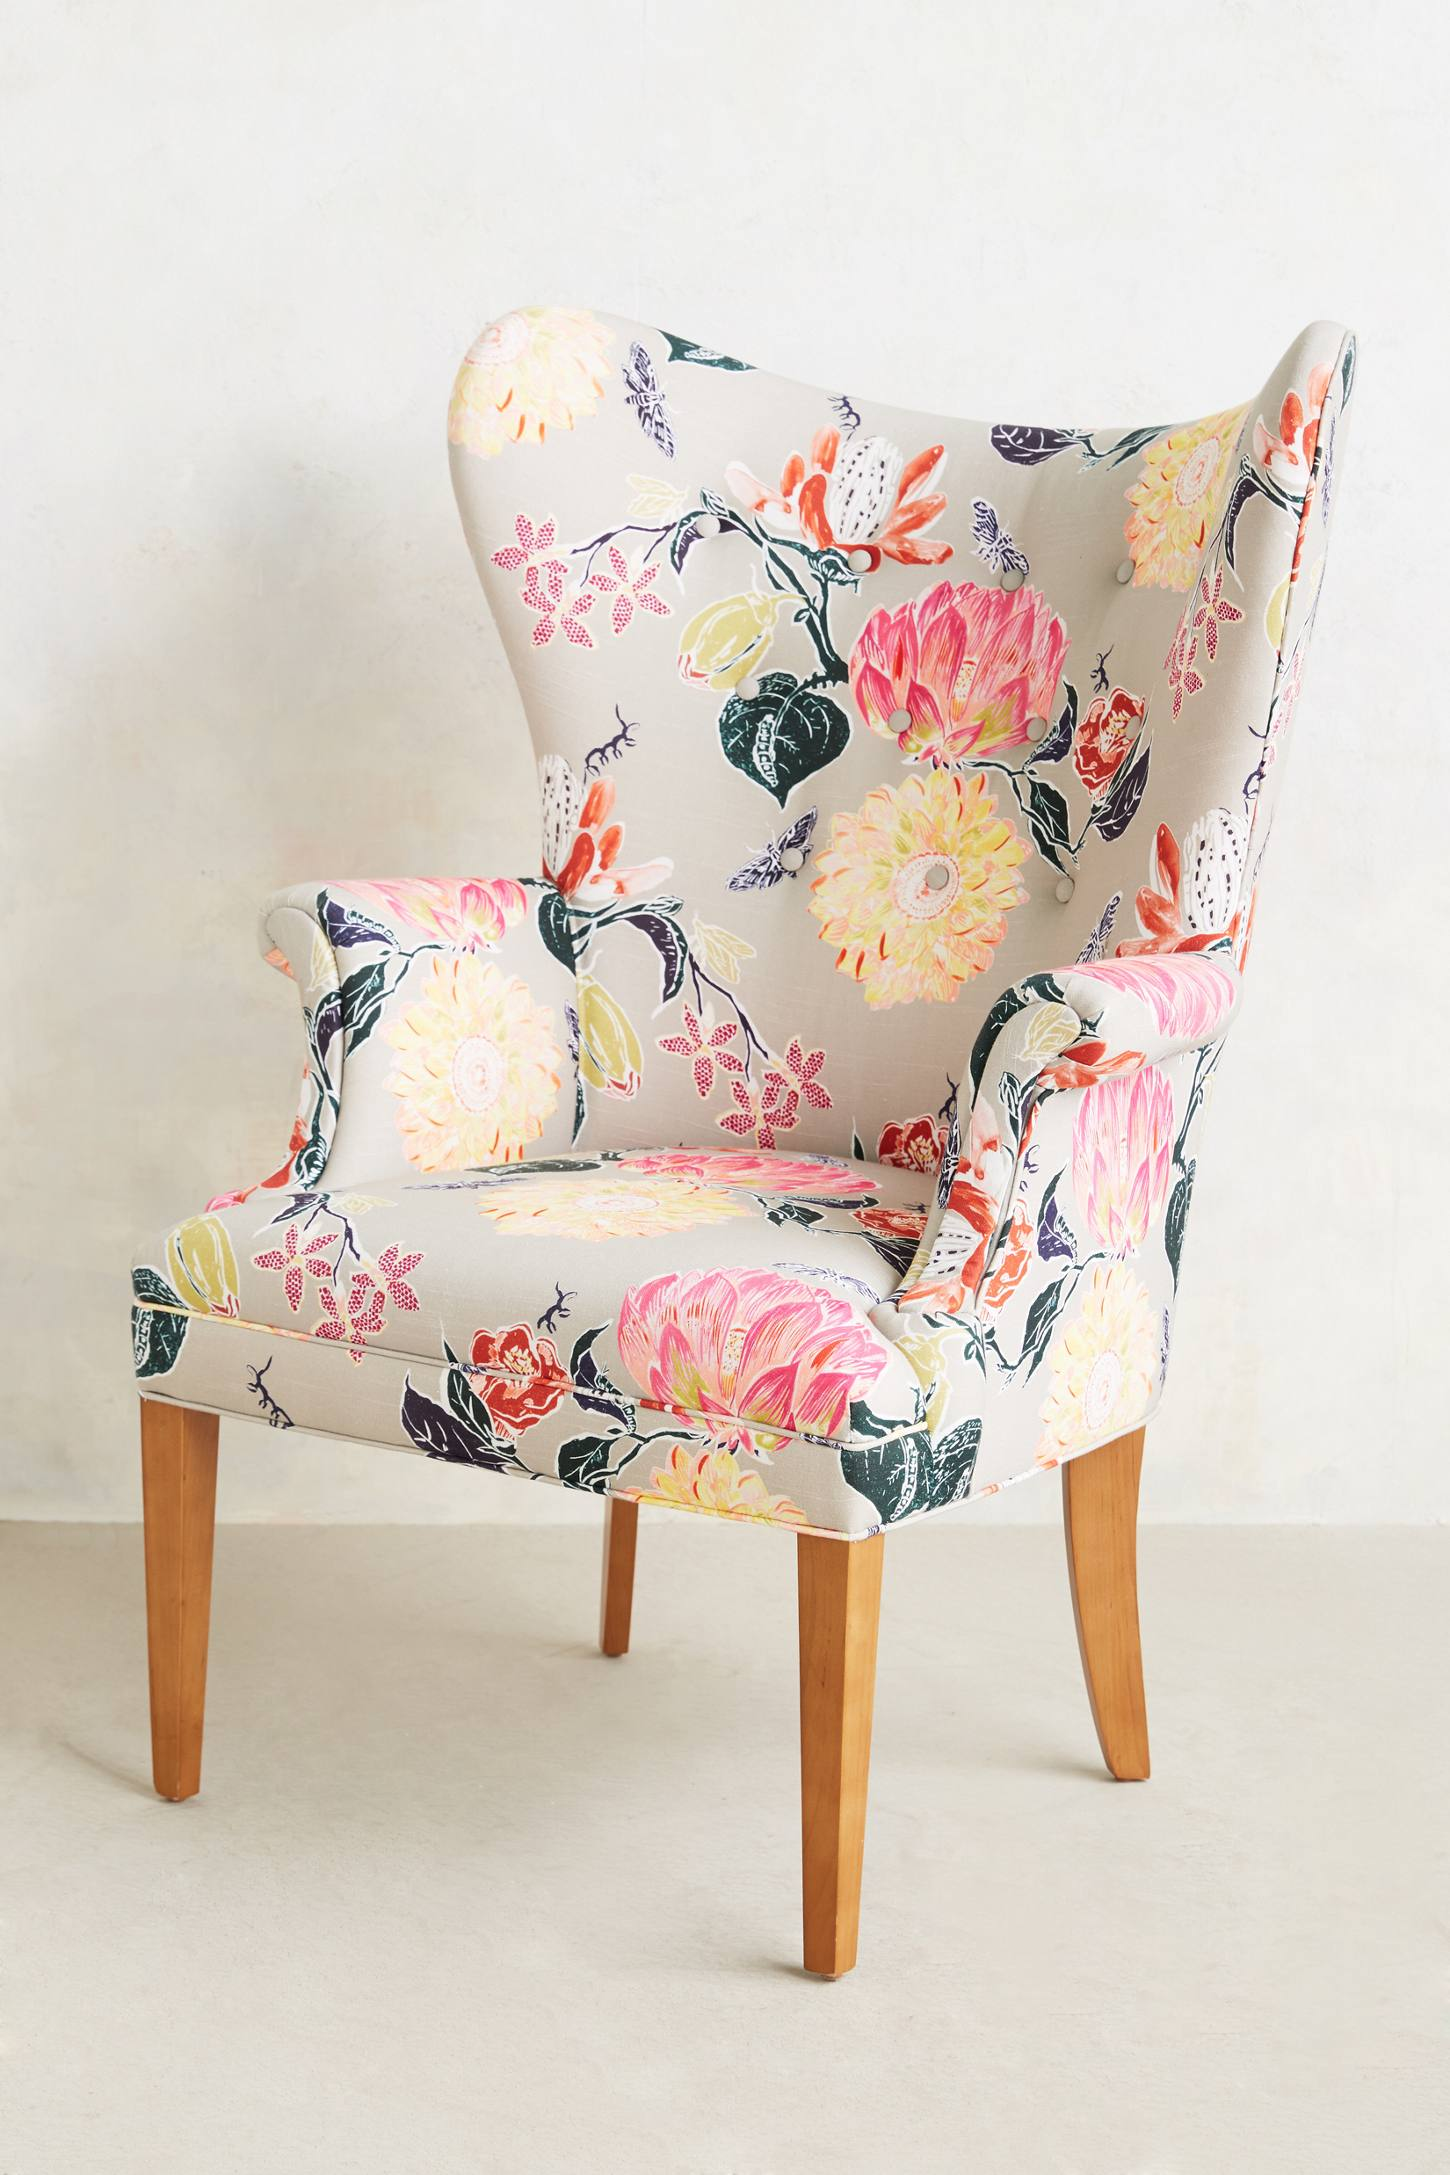 Floral Wingback Chair Décor Dictionary Selvedge The Design Tabloid